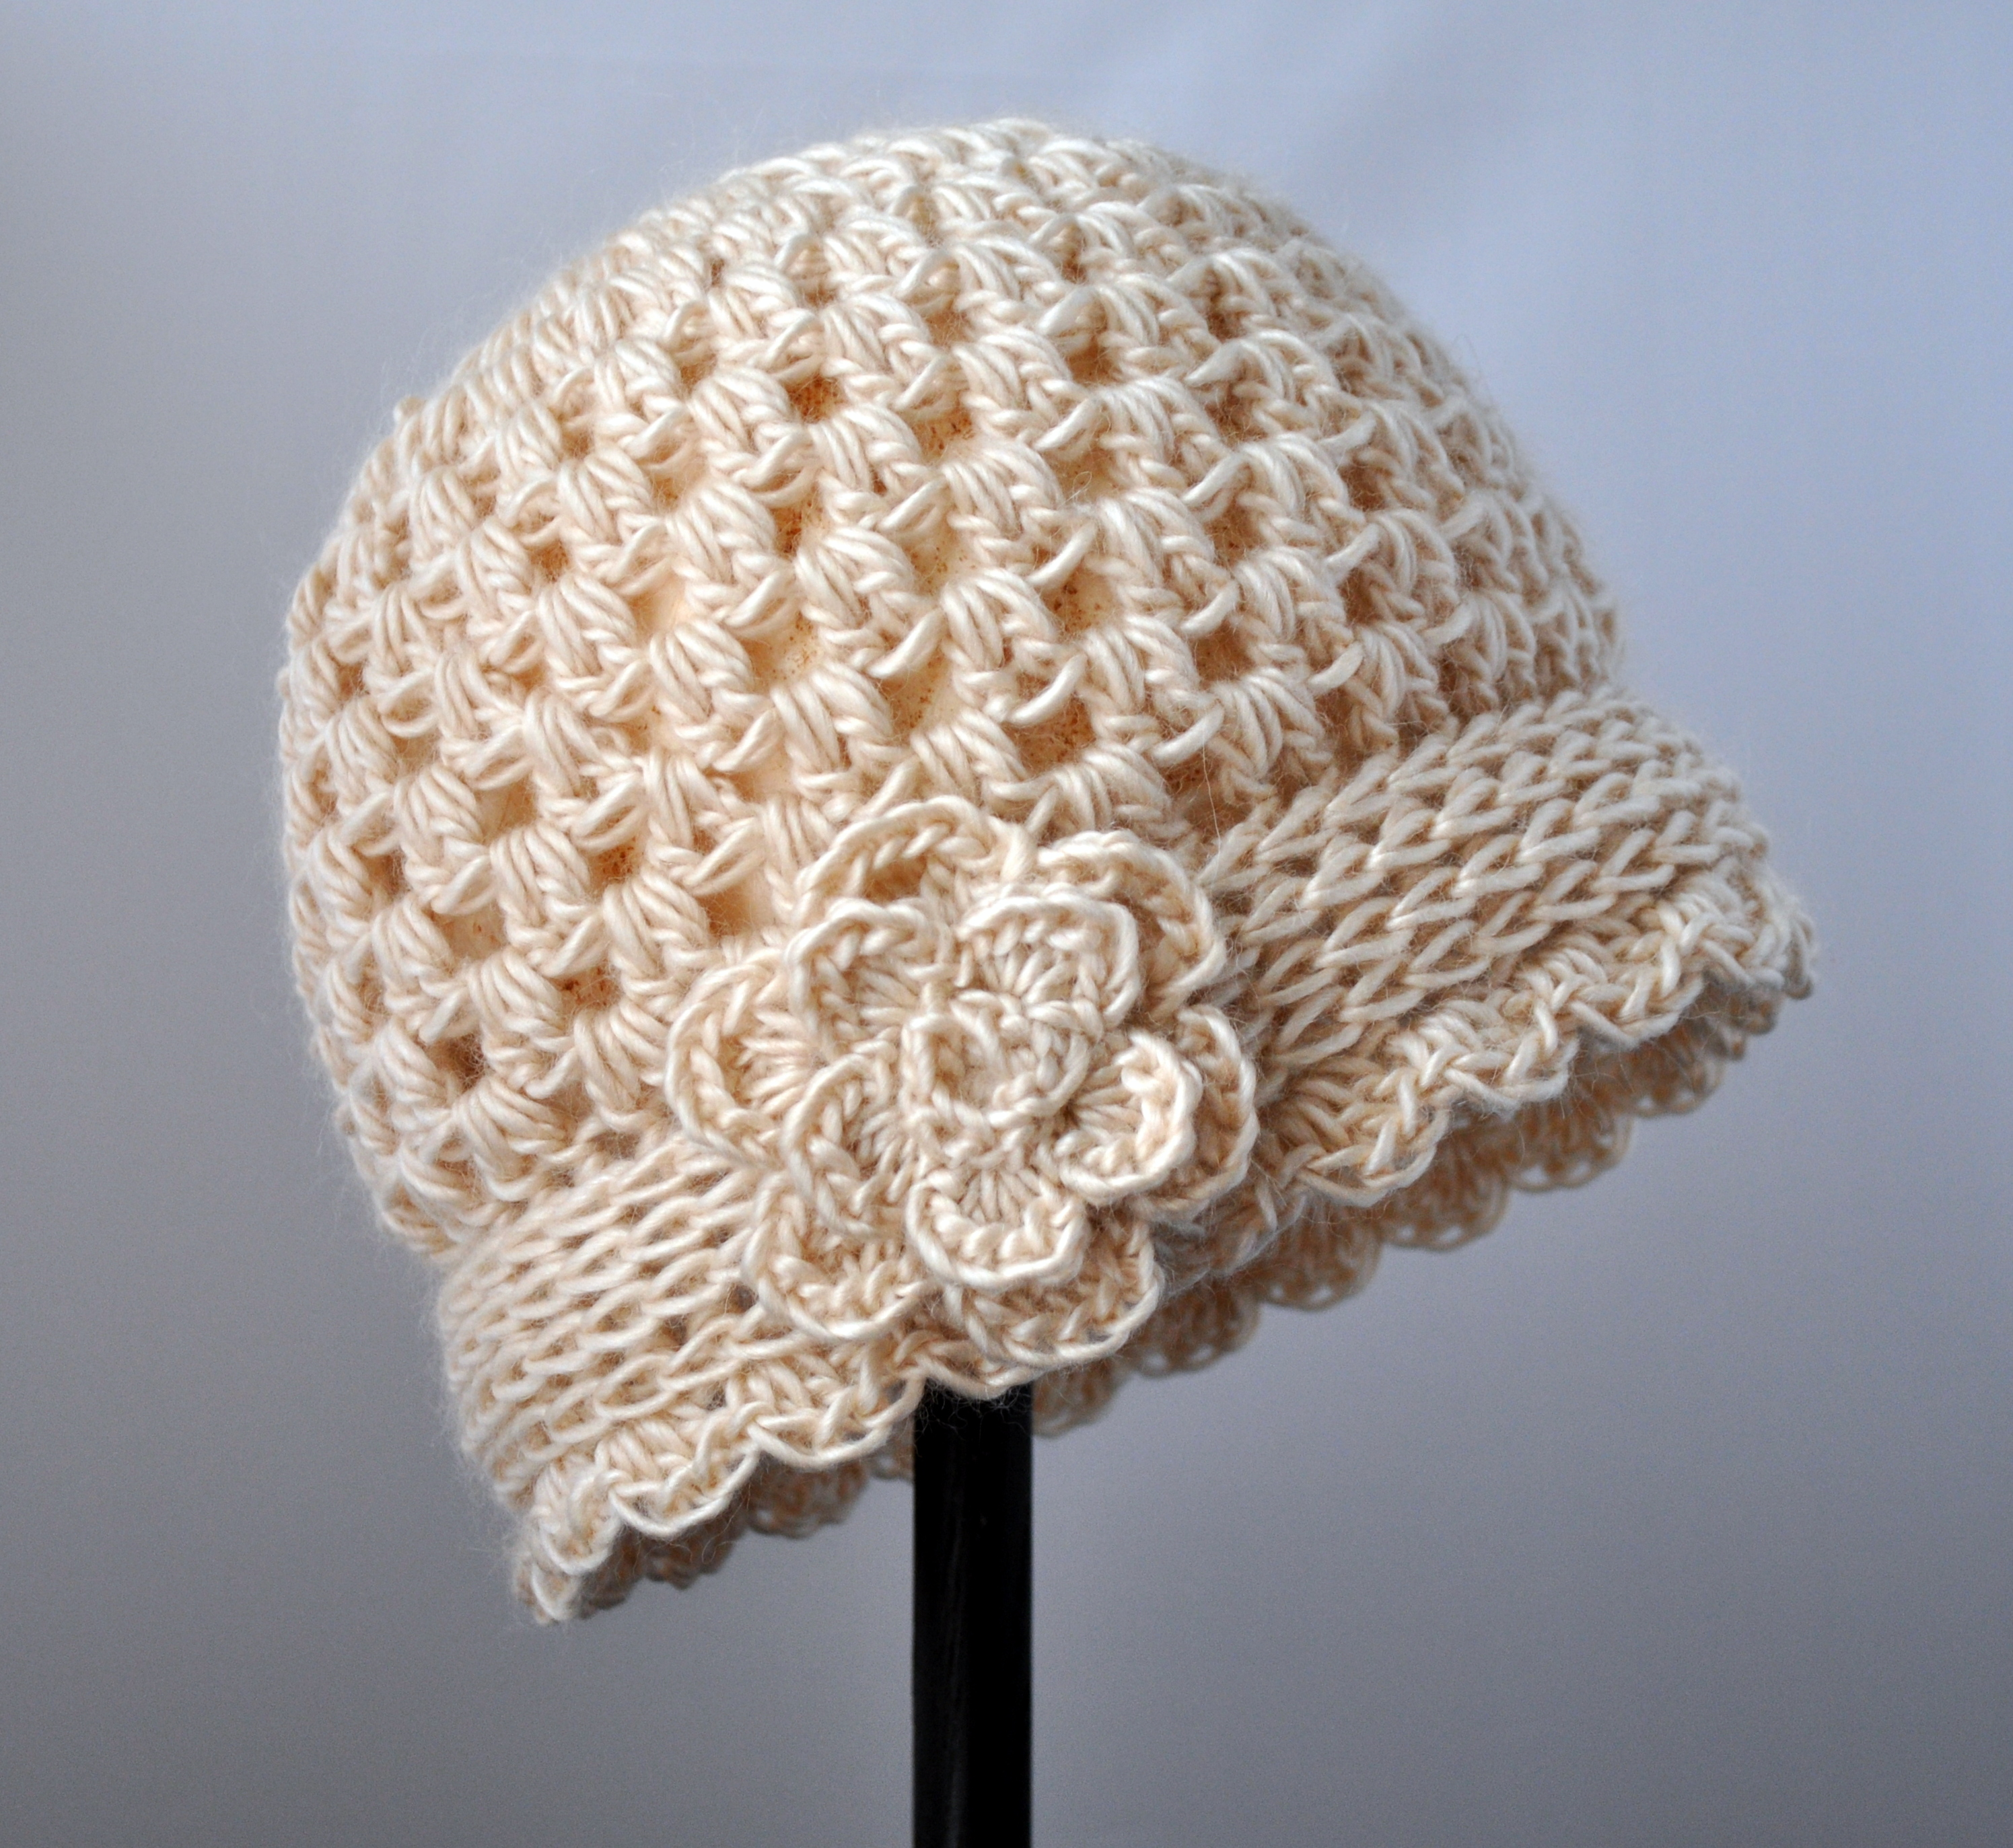 Free Crochet Hat Patterns : Crochet Newsboy Hat Pattern Free Easy Crochet Patterns Crochet LONG ...